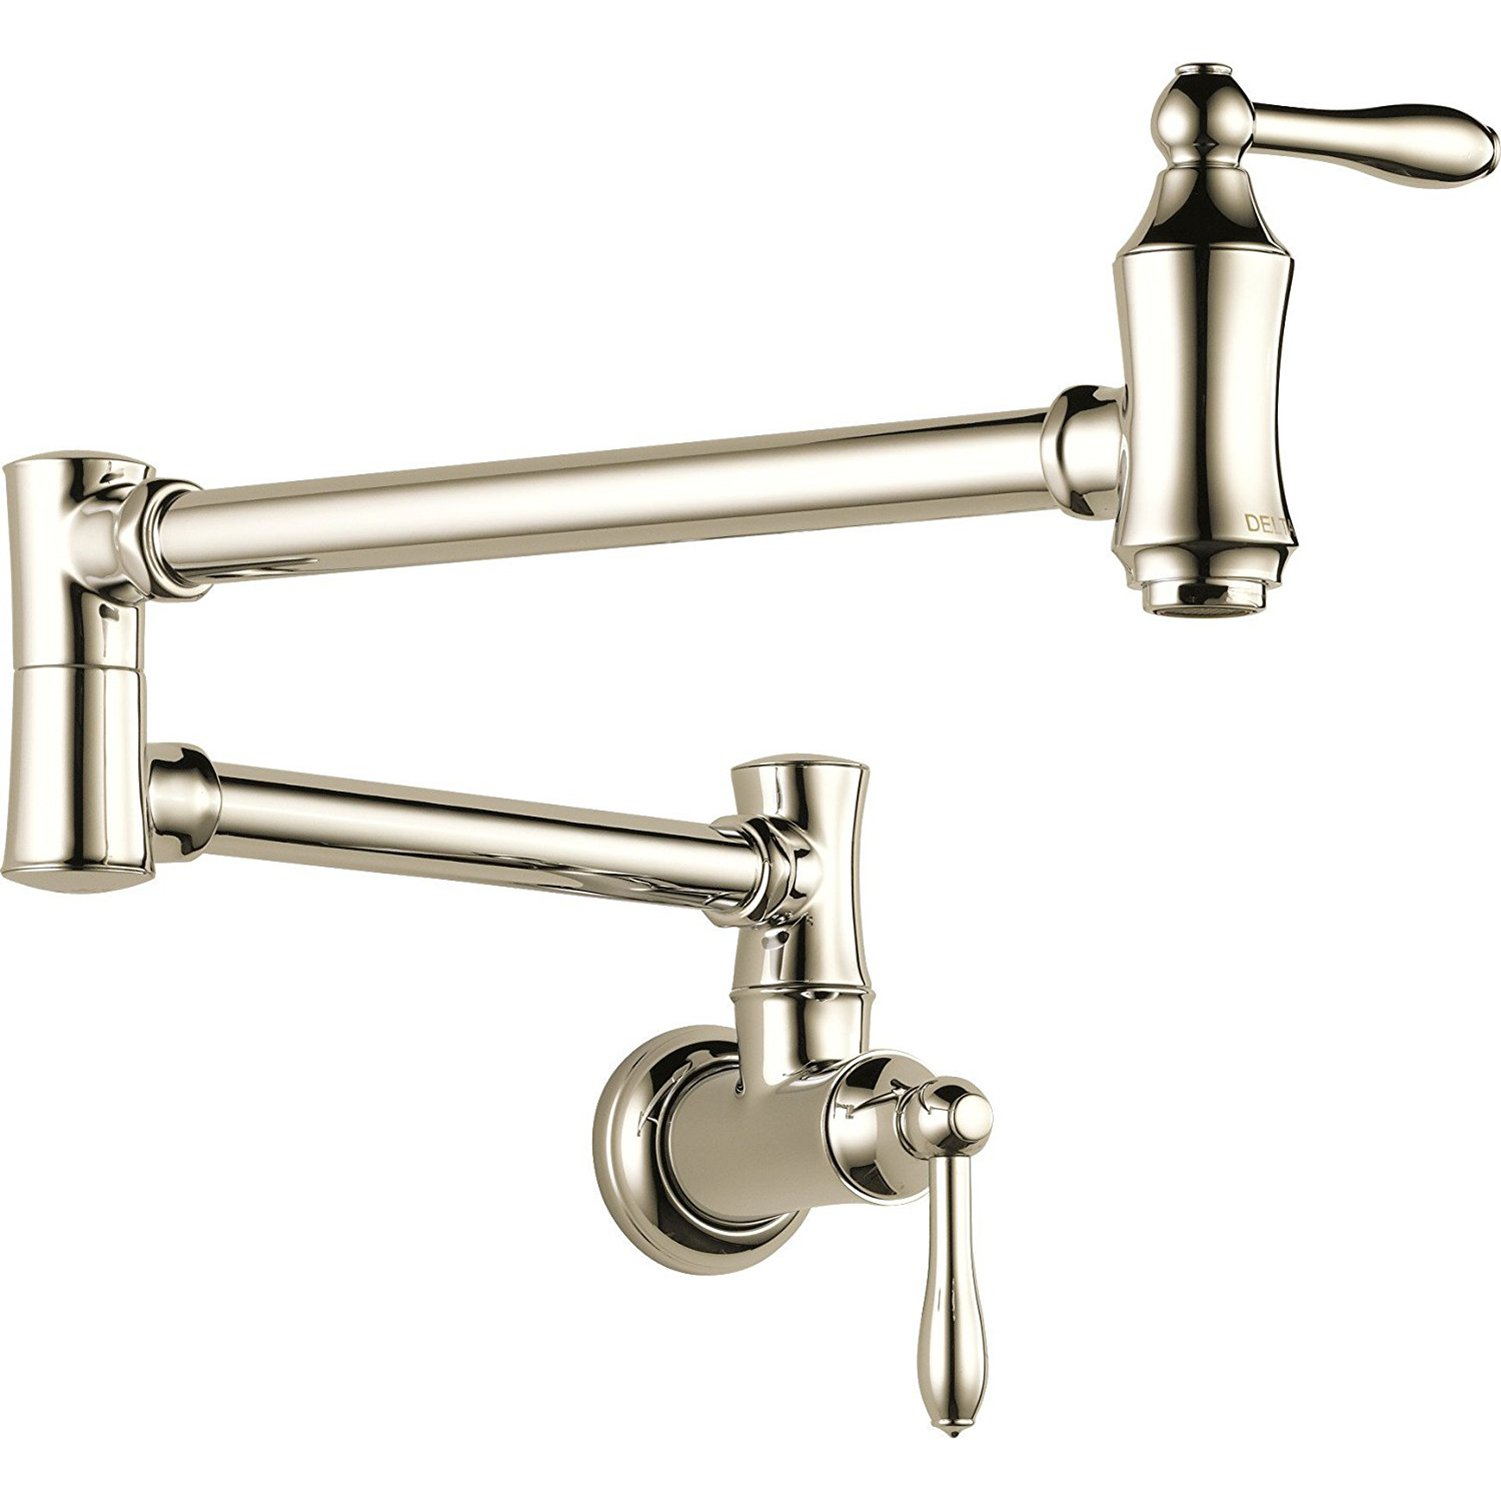 Delta Faucets Victorian Home Pot Filler Wall Faucet, Polished Nickel 1177LF-PN